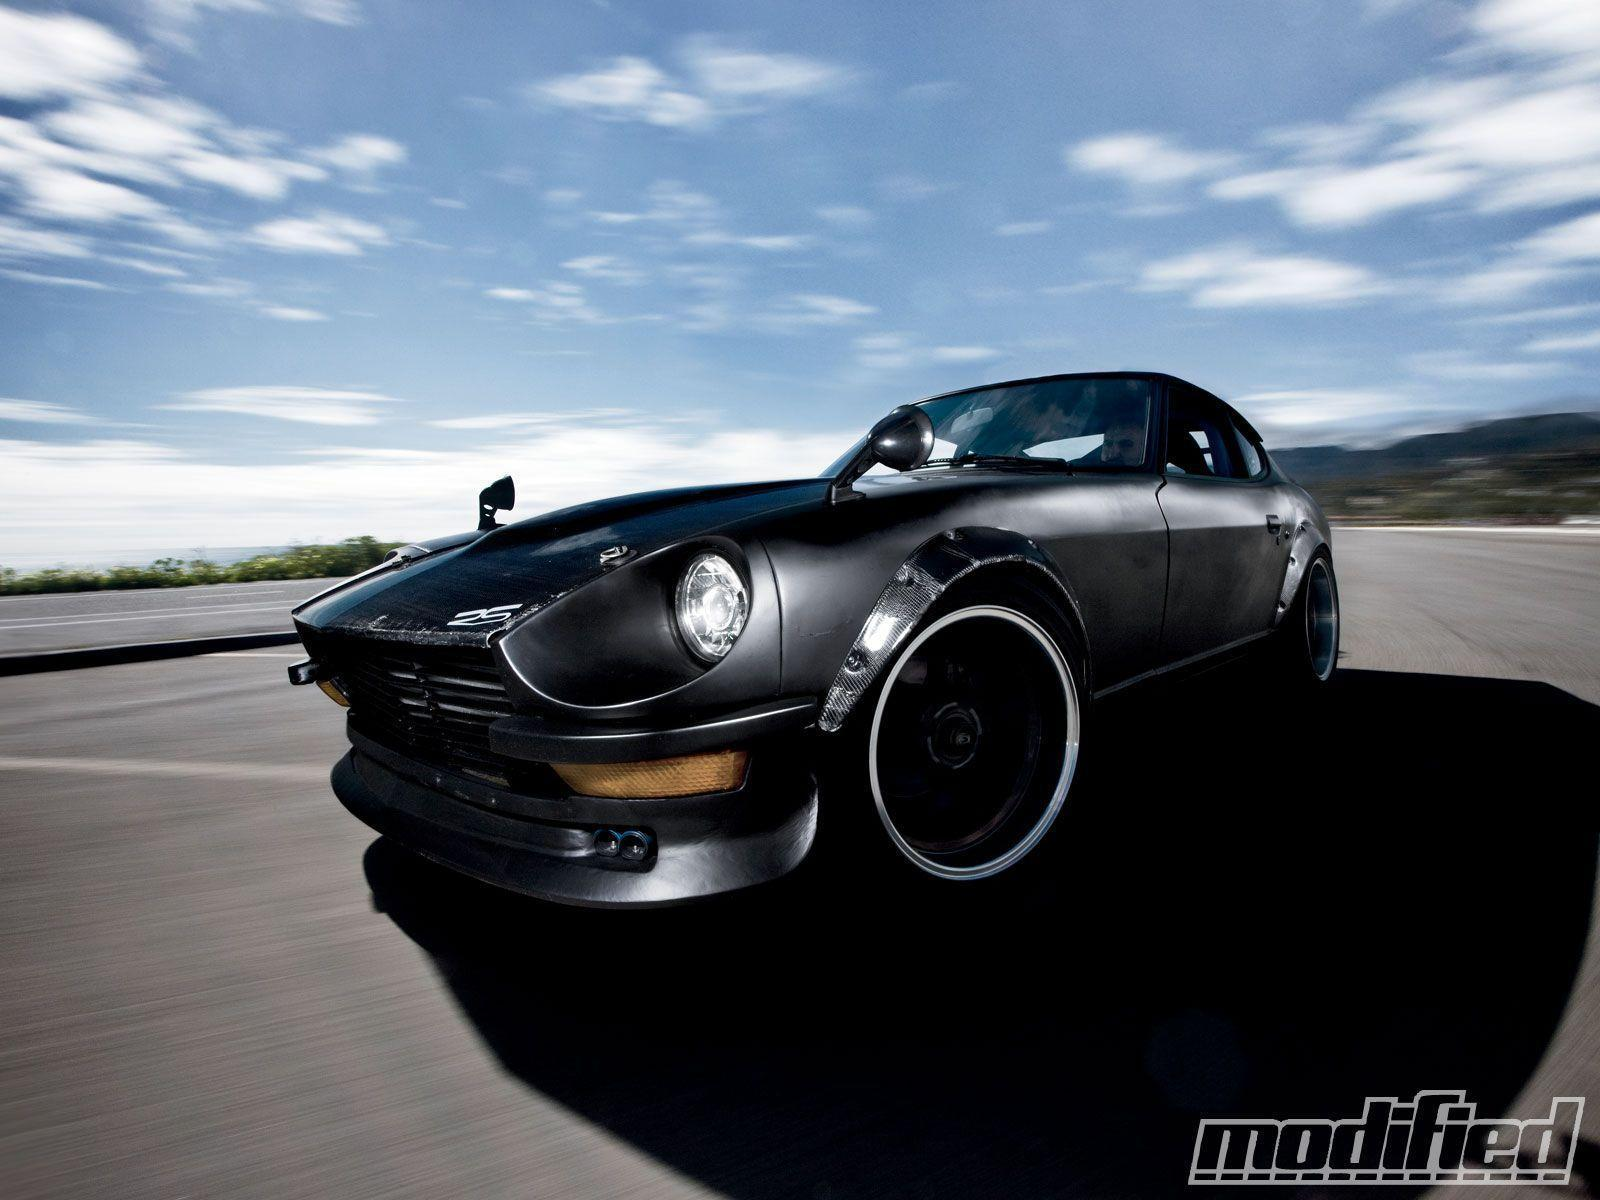 Datsun 240Z Wallpapers - Wallpaper Cave1972 Datsun 240z Wallpaper